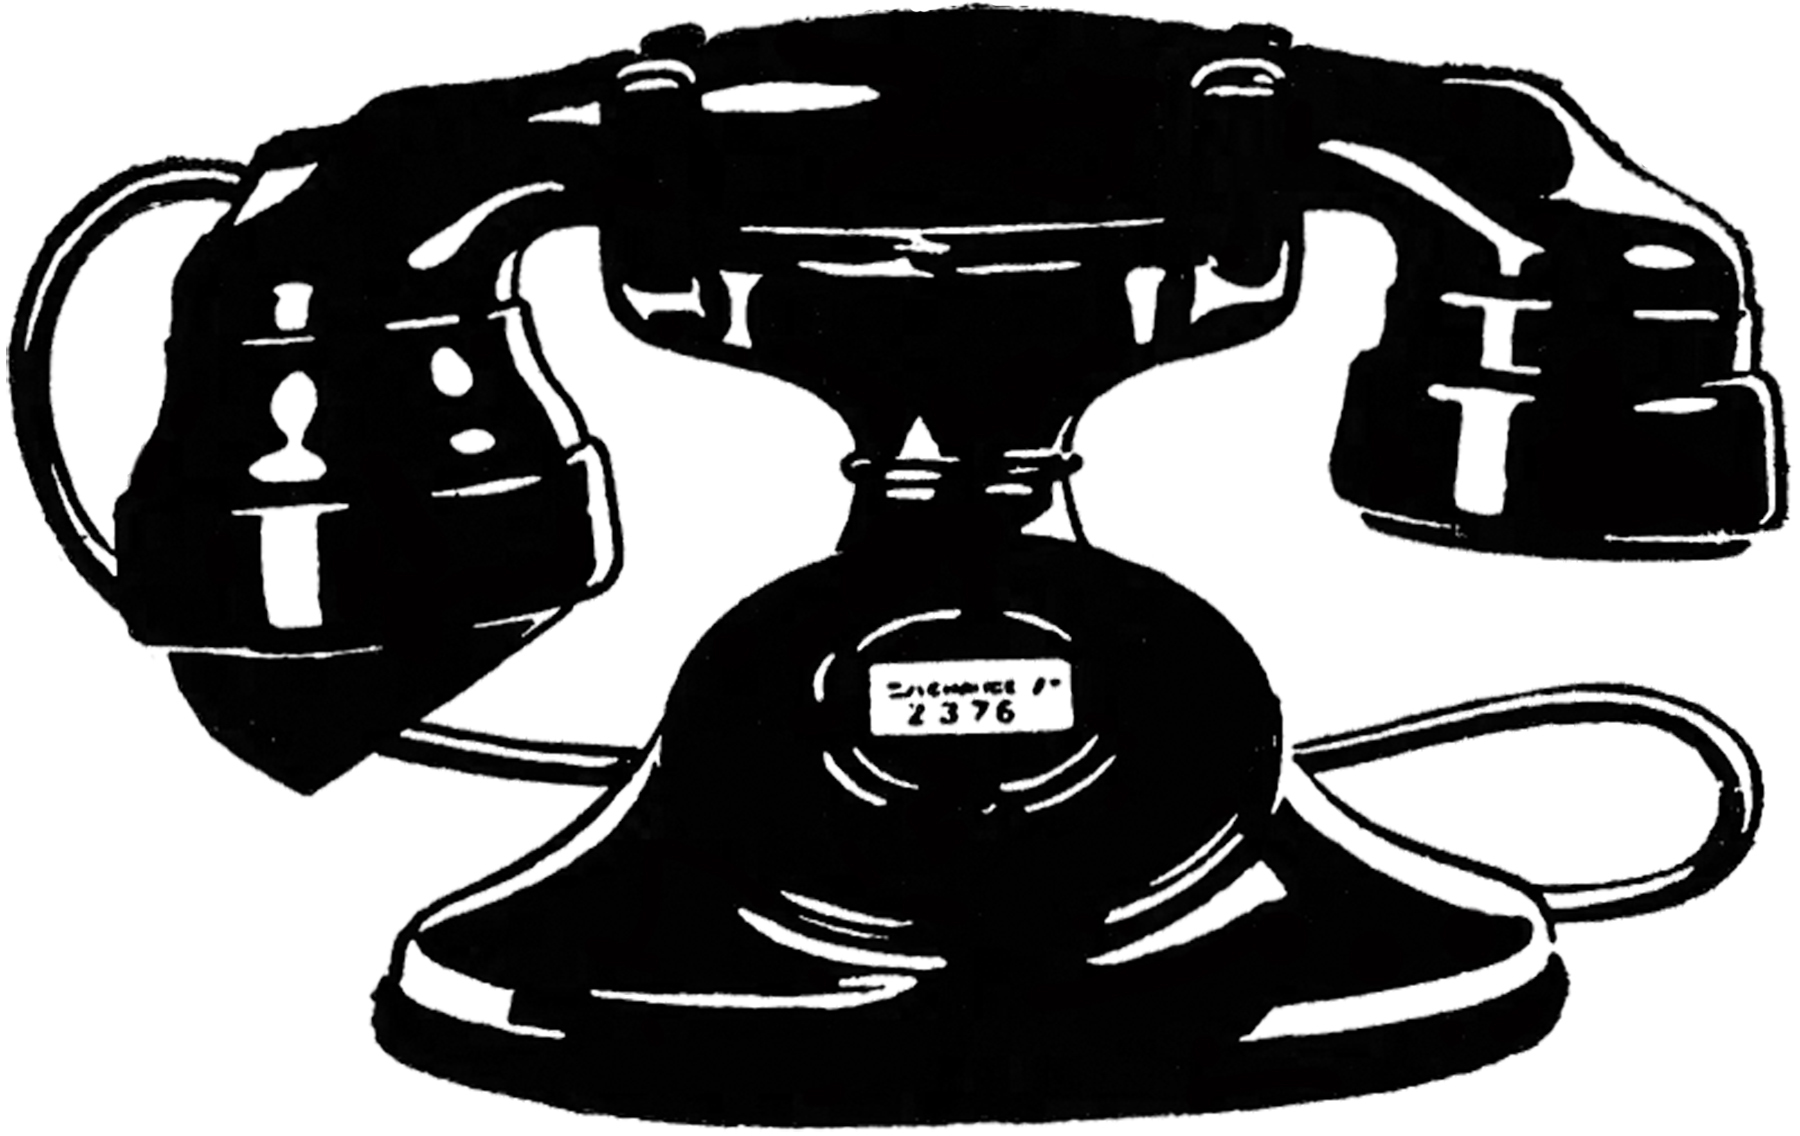 vintage telephone clipart - photo #15